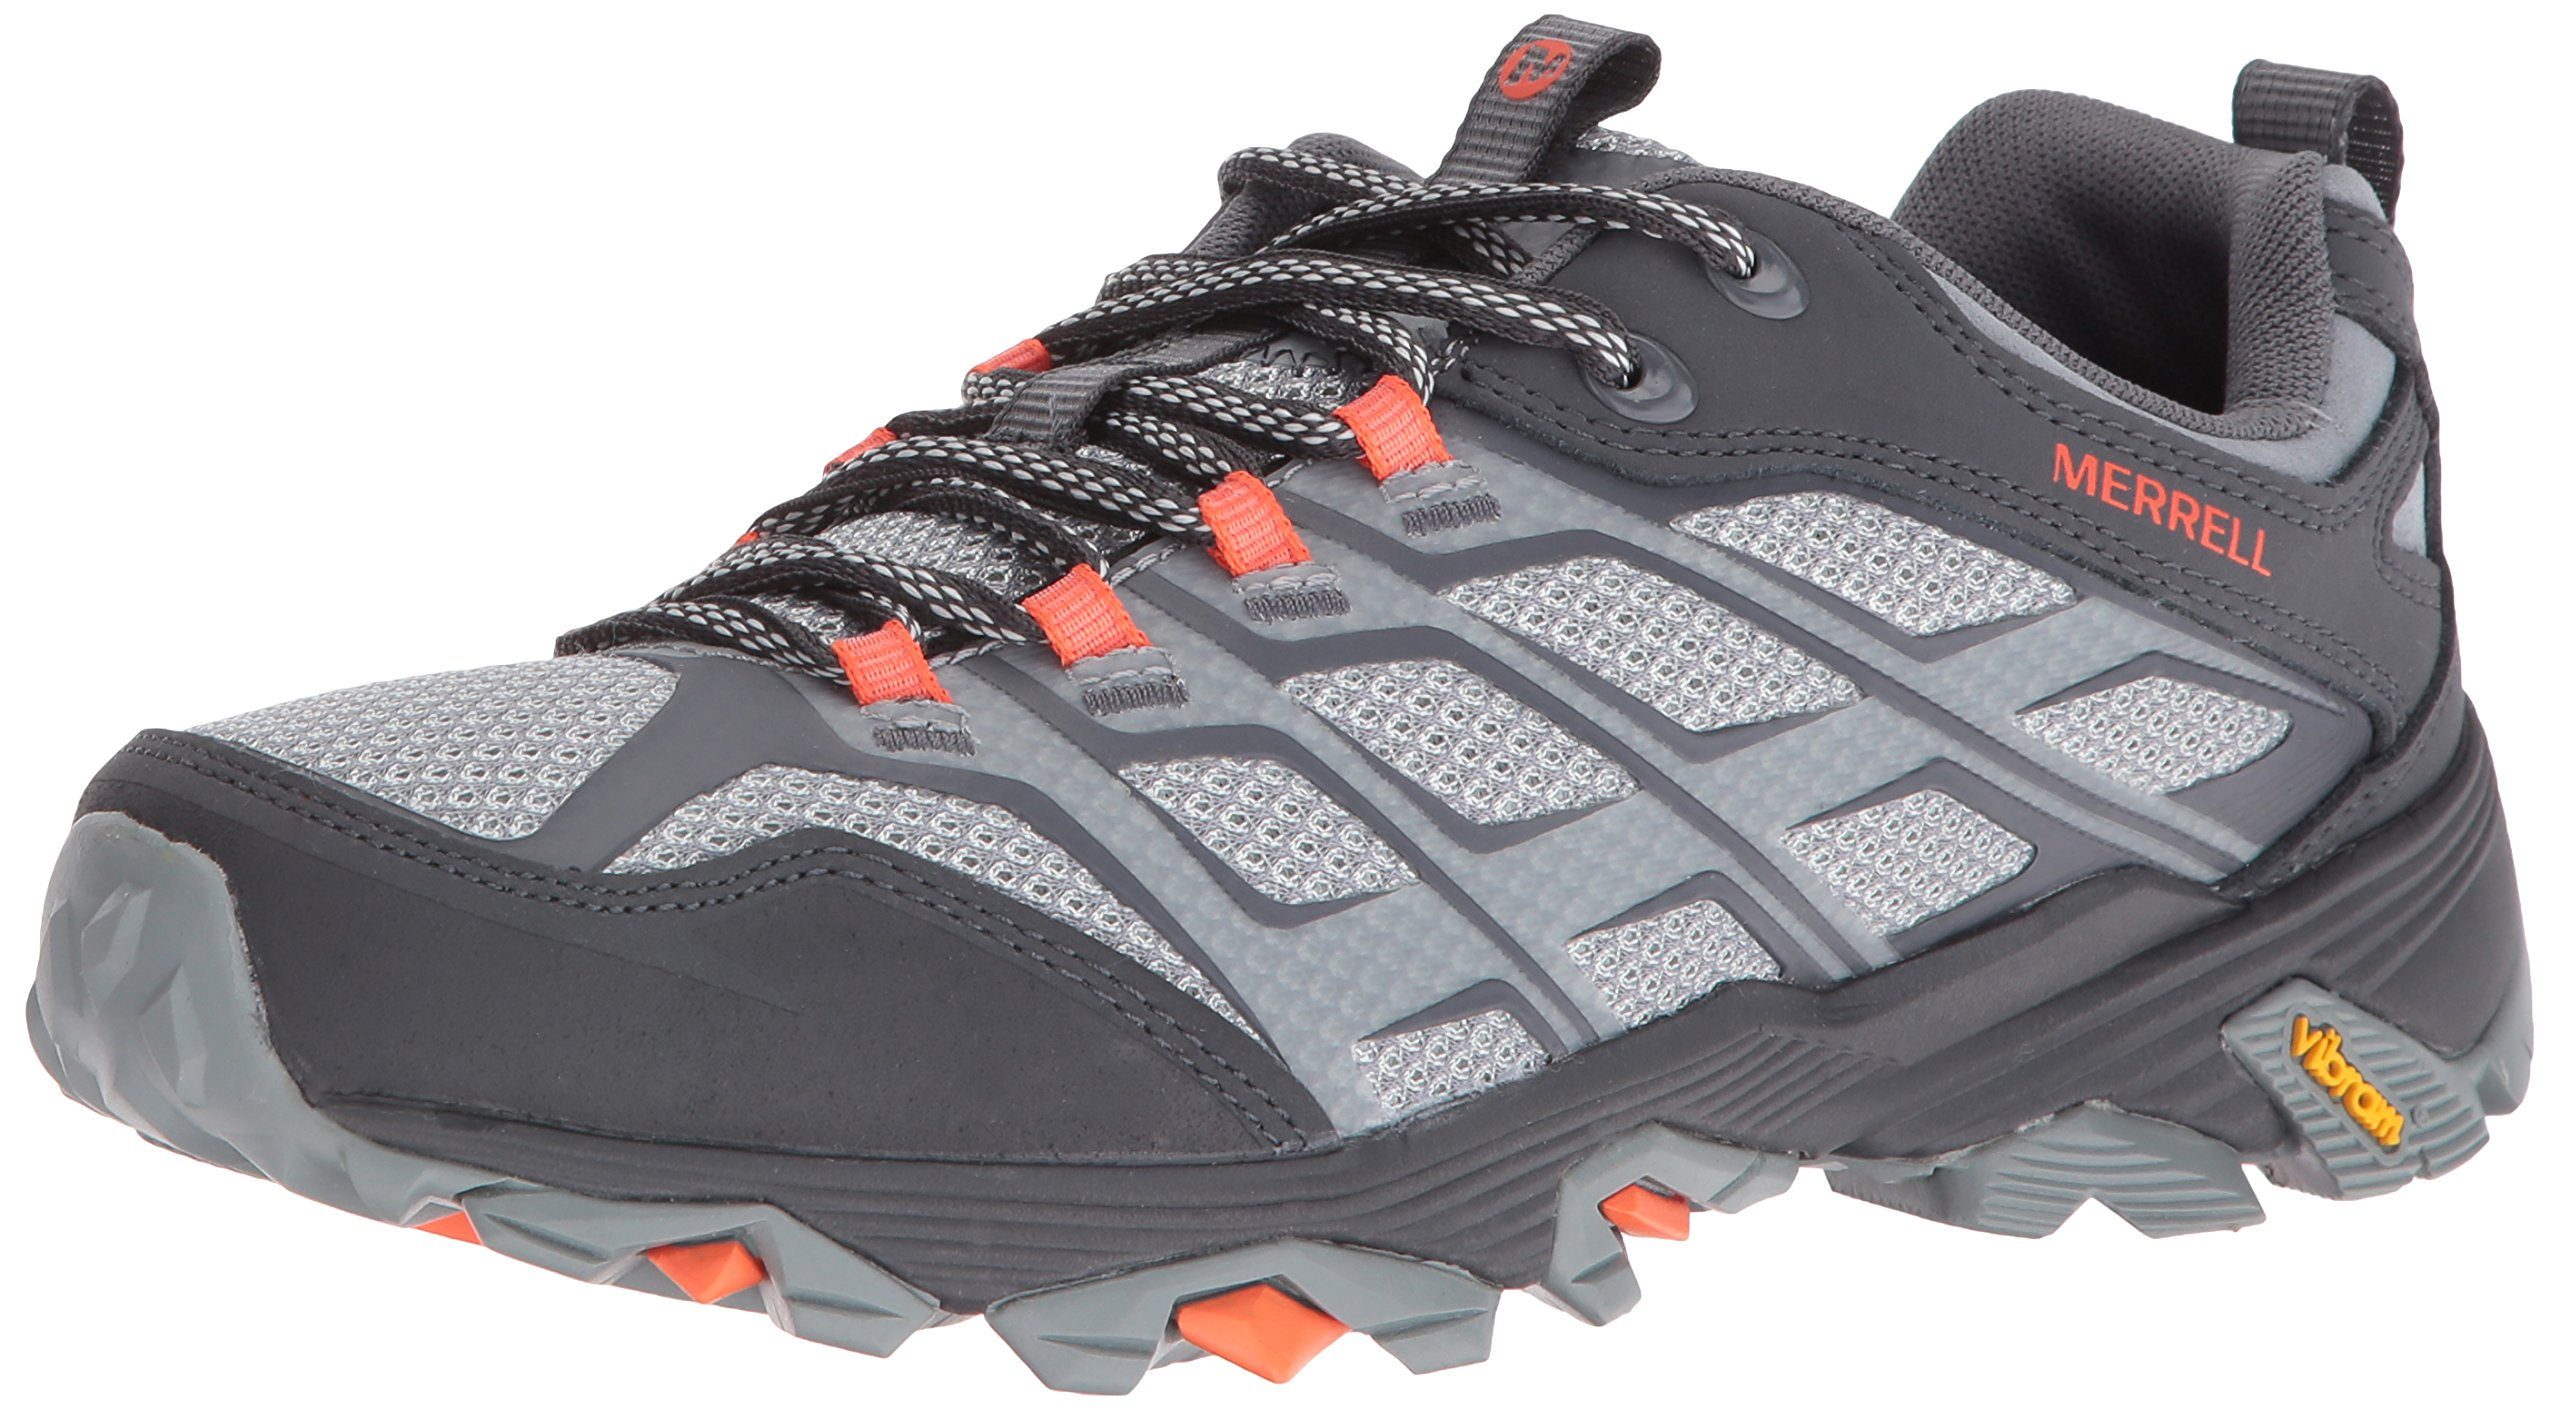 Merrell Men's Moab FST Hiking Shoe, Grey/Orange, 9.5 M US